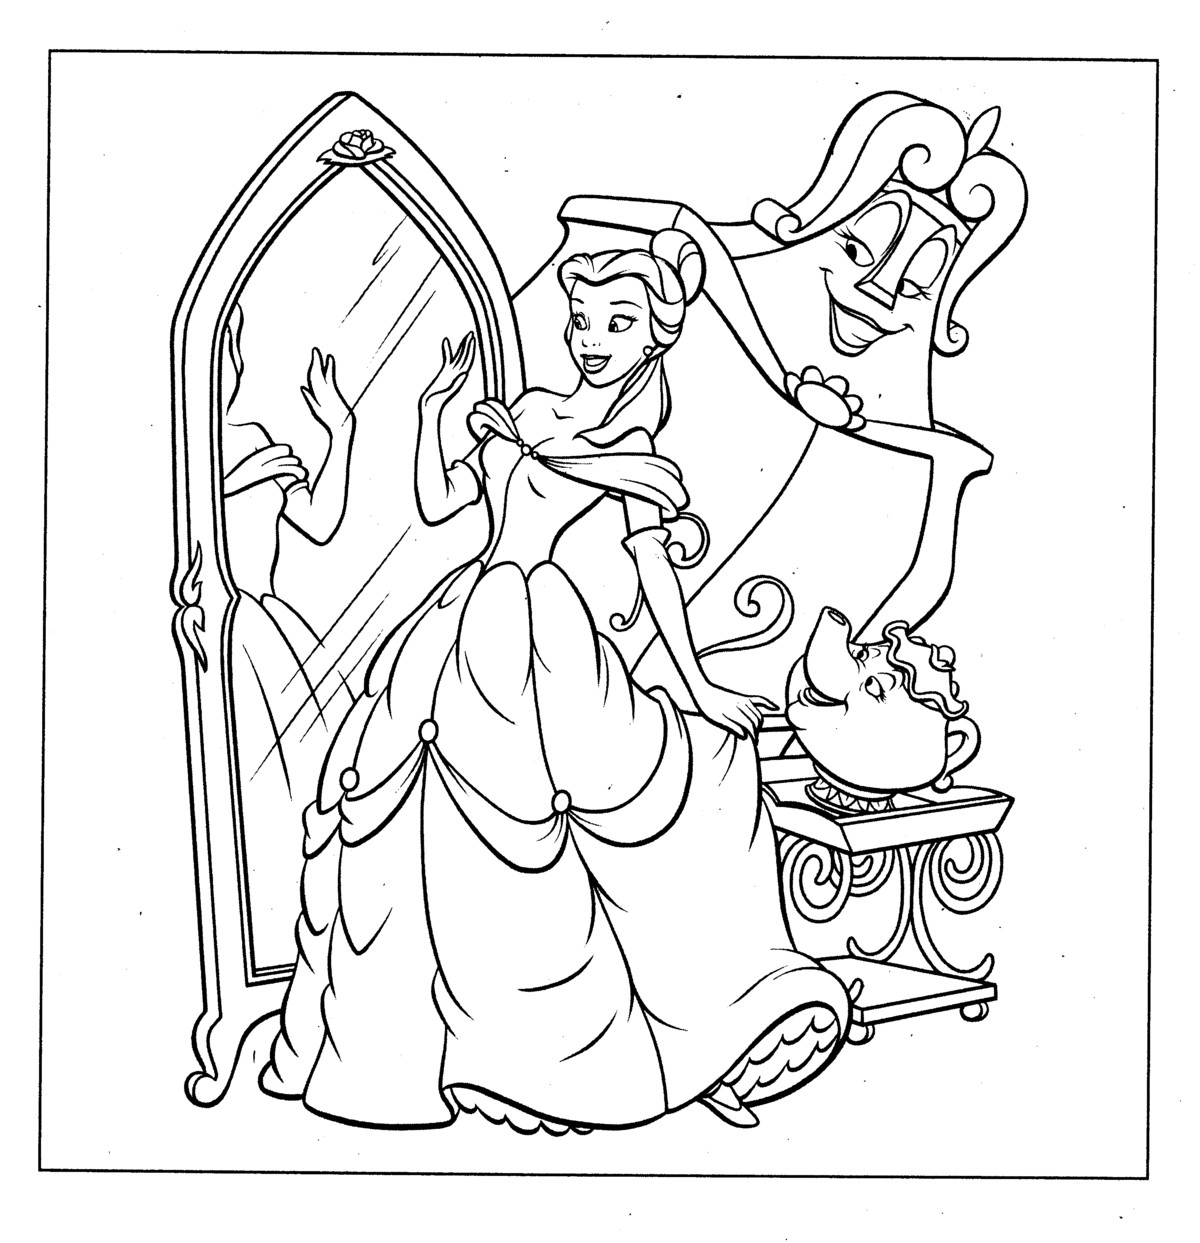 coloring sheet disney disney coloring pages to download and print for free disney sheet coloring